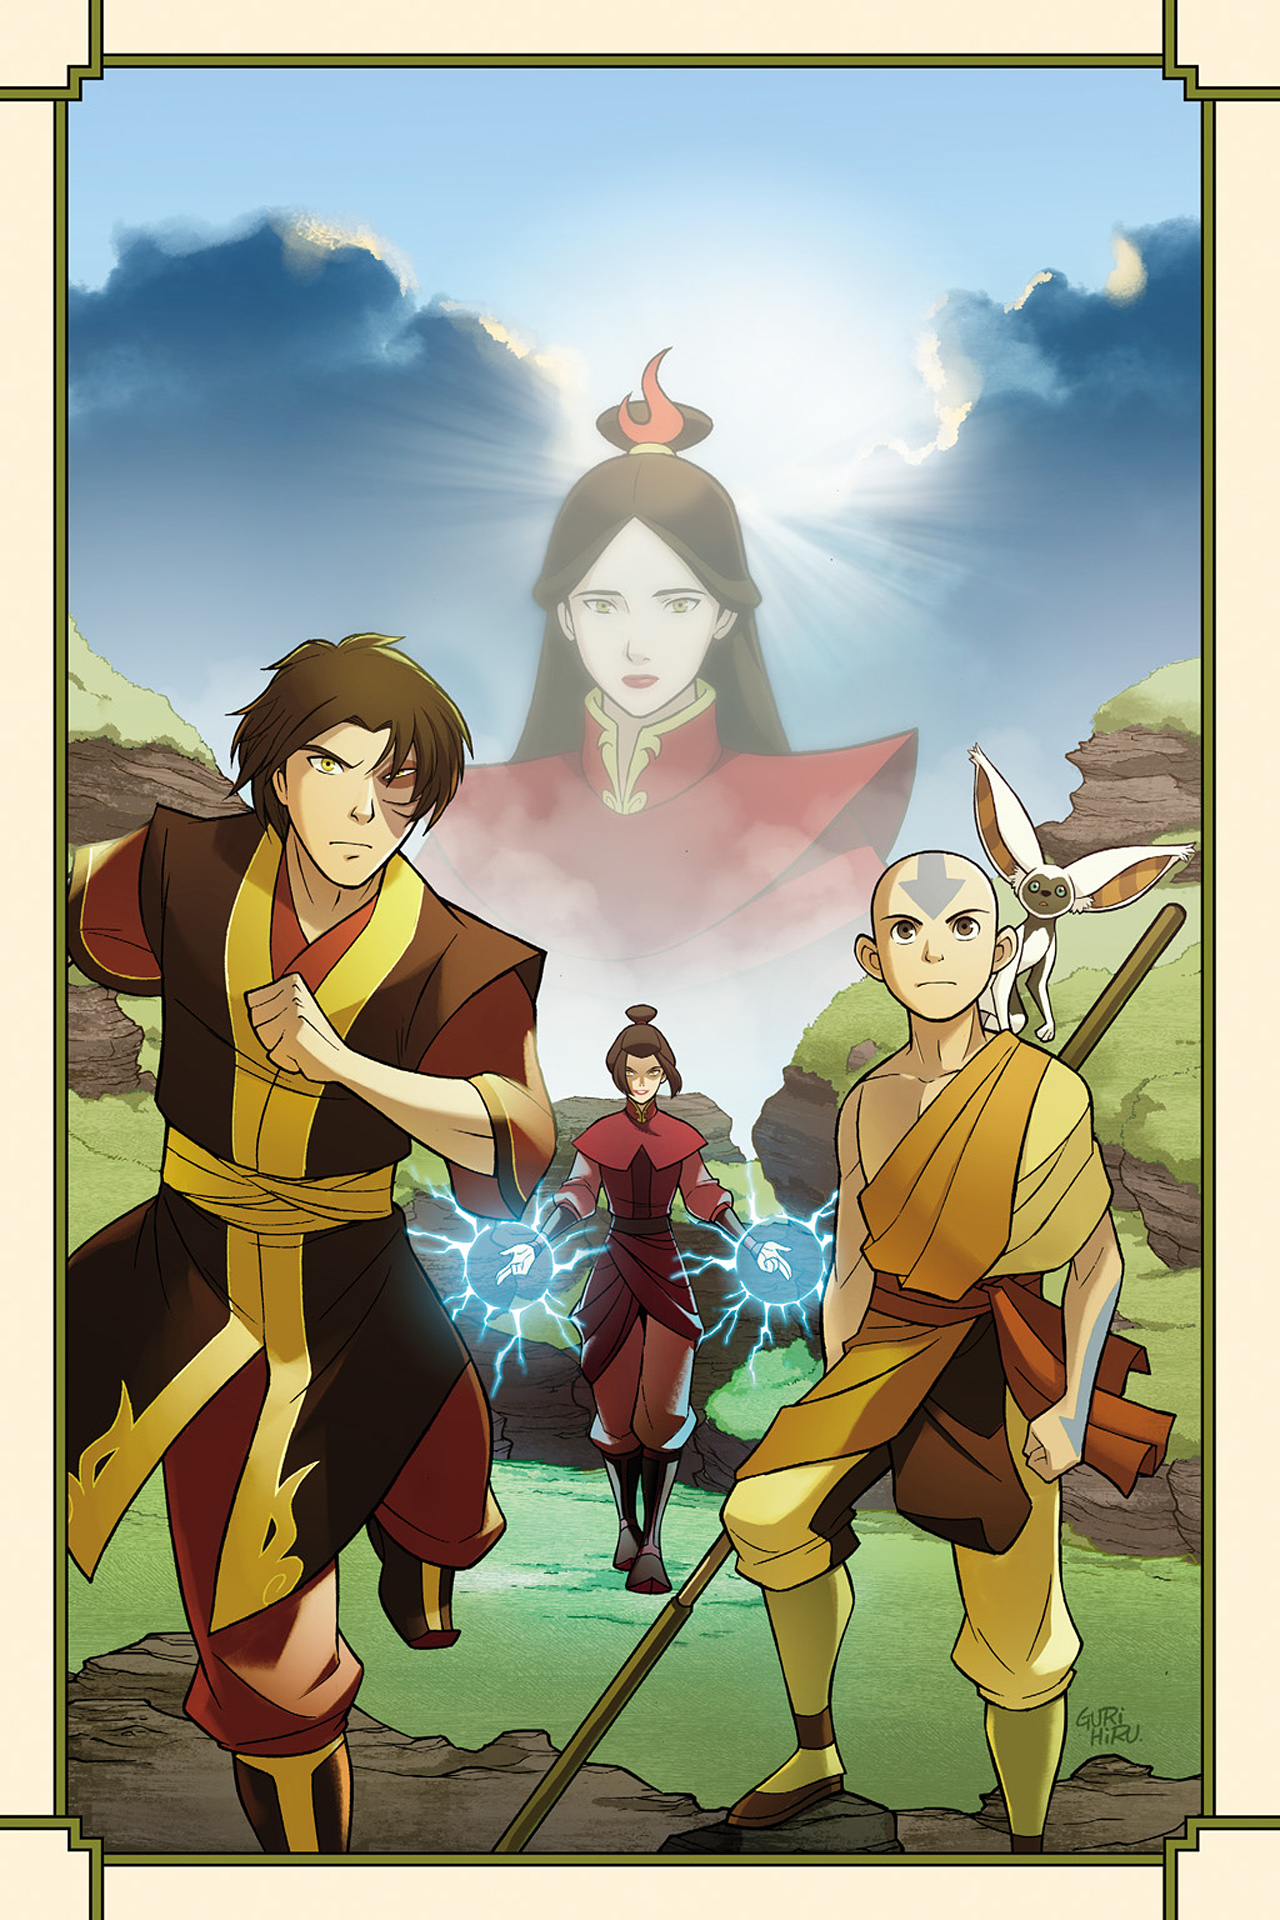 Read online Nickelodeon Avatar: The Last Airbender - The Search comic -  Issue # Part 1 - 3